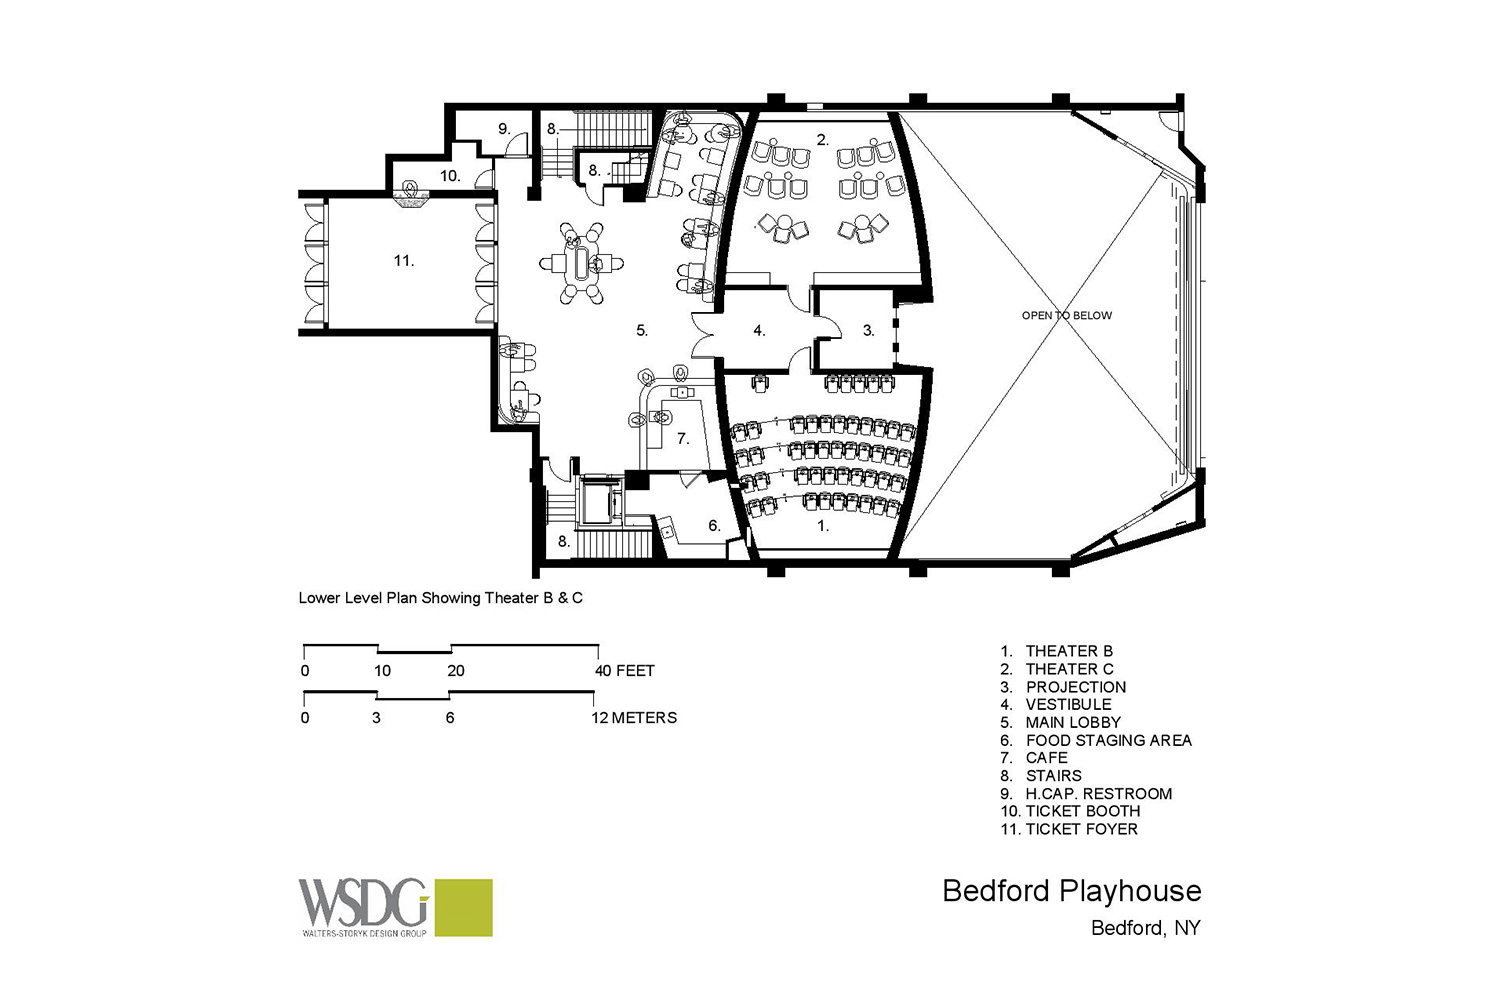 The Bedford Playhouse/Clive Davis Arts Center is a classic movie theater in the final stages of a total renovation. WSDG is providing complete acoustic and A/V design and consultation for the complex.Presentation Drawing 2